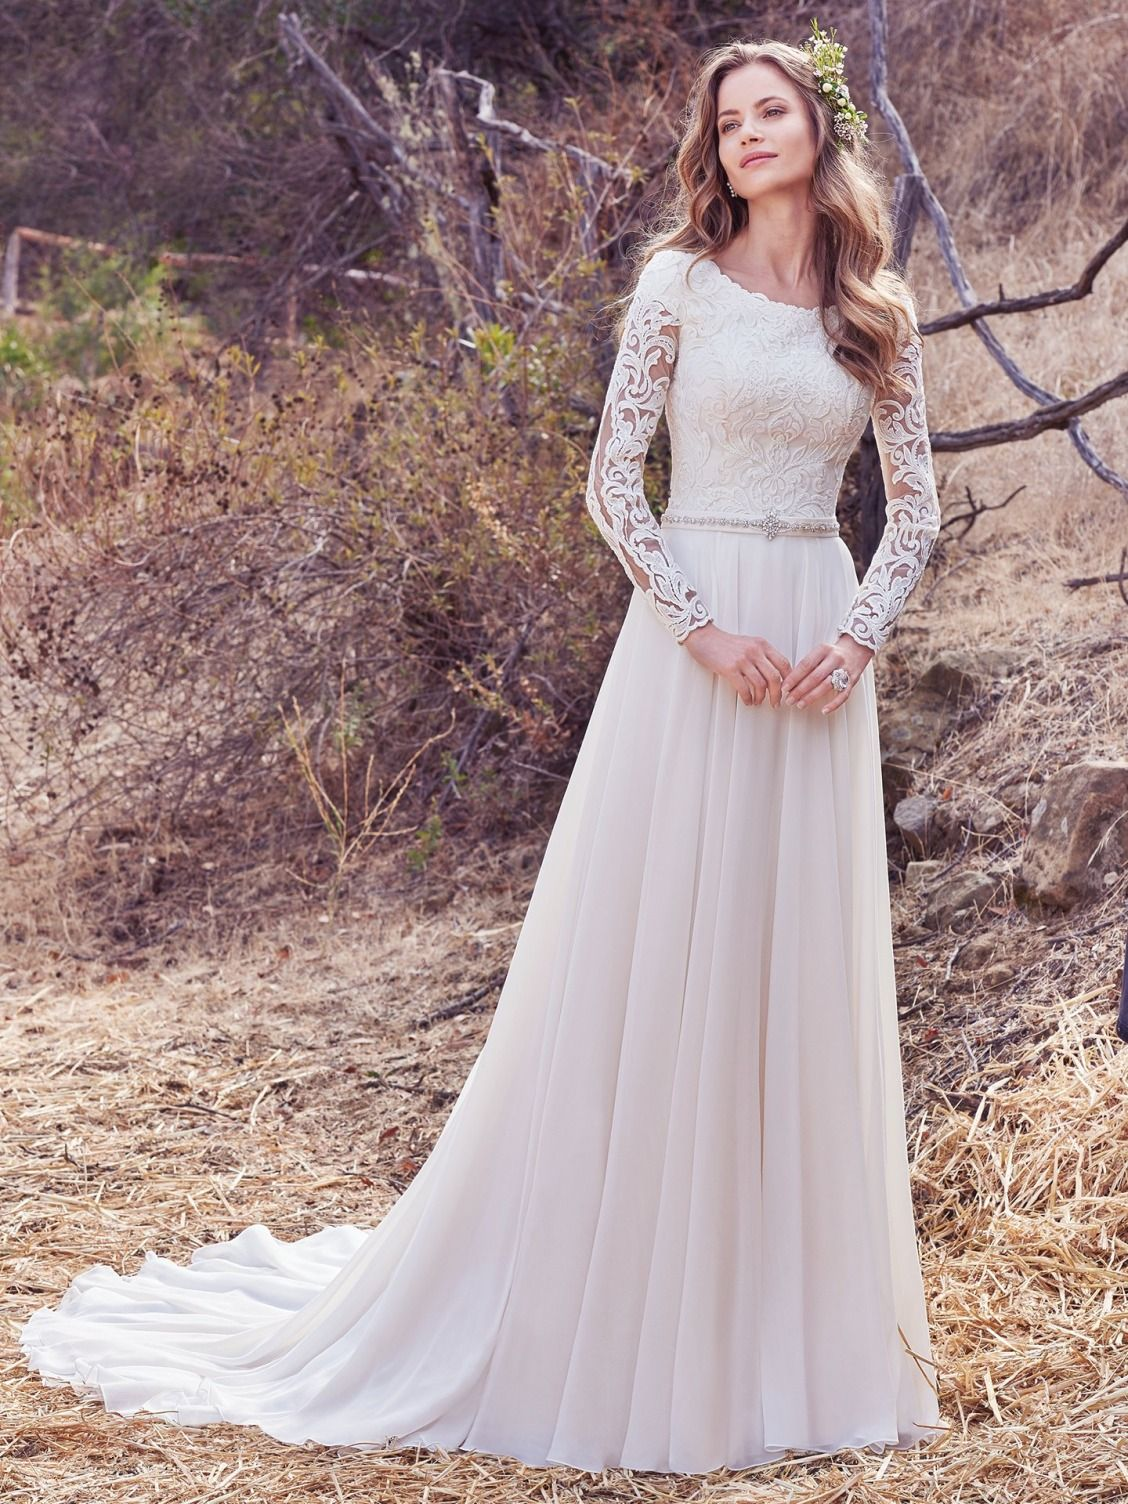 ... This Aurora Chiffon A-line wedding dress features a lace bodice with  illusion long-sleeves 44b1322850e5